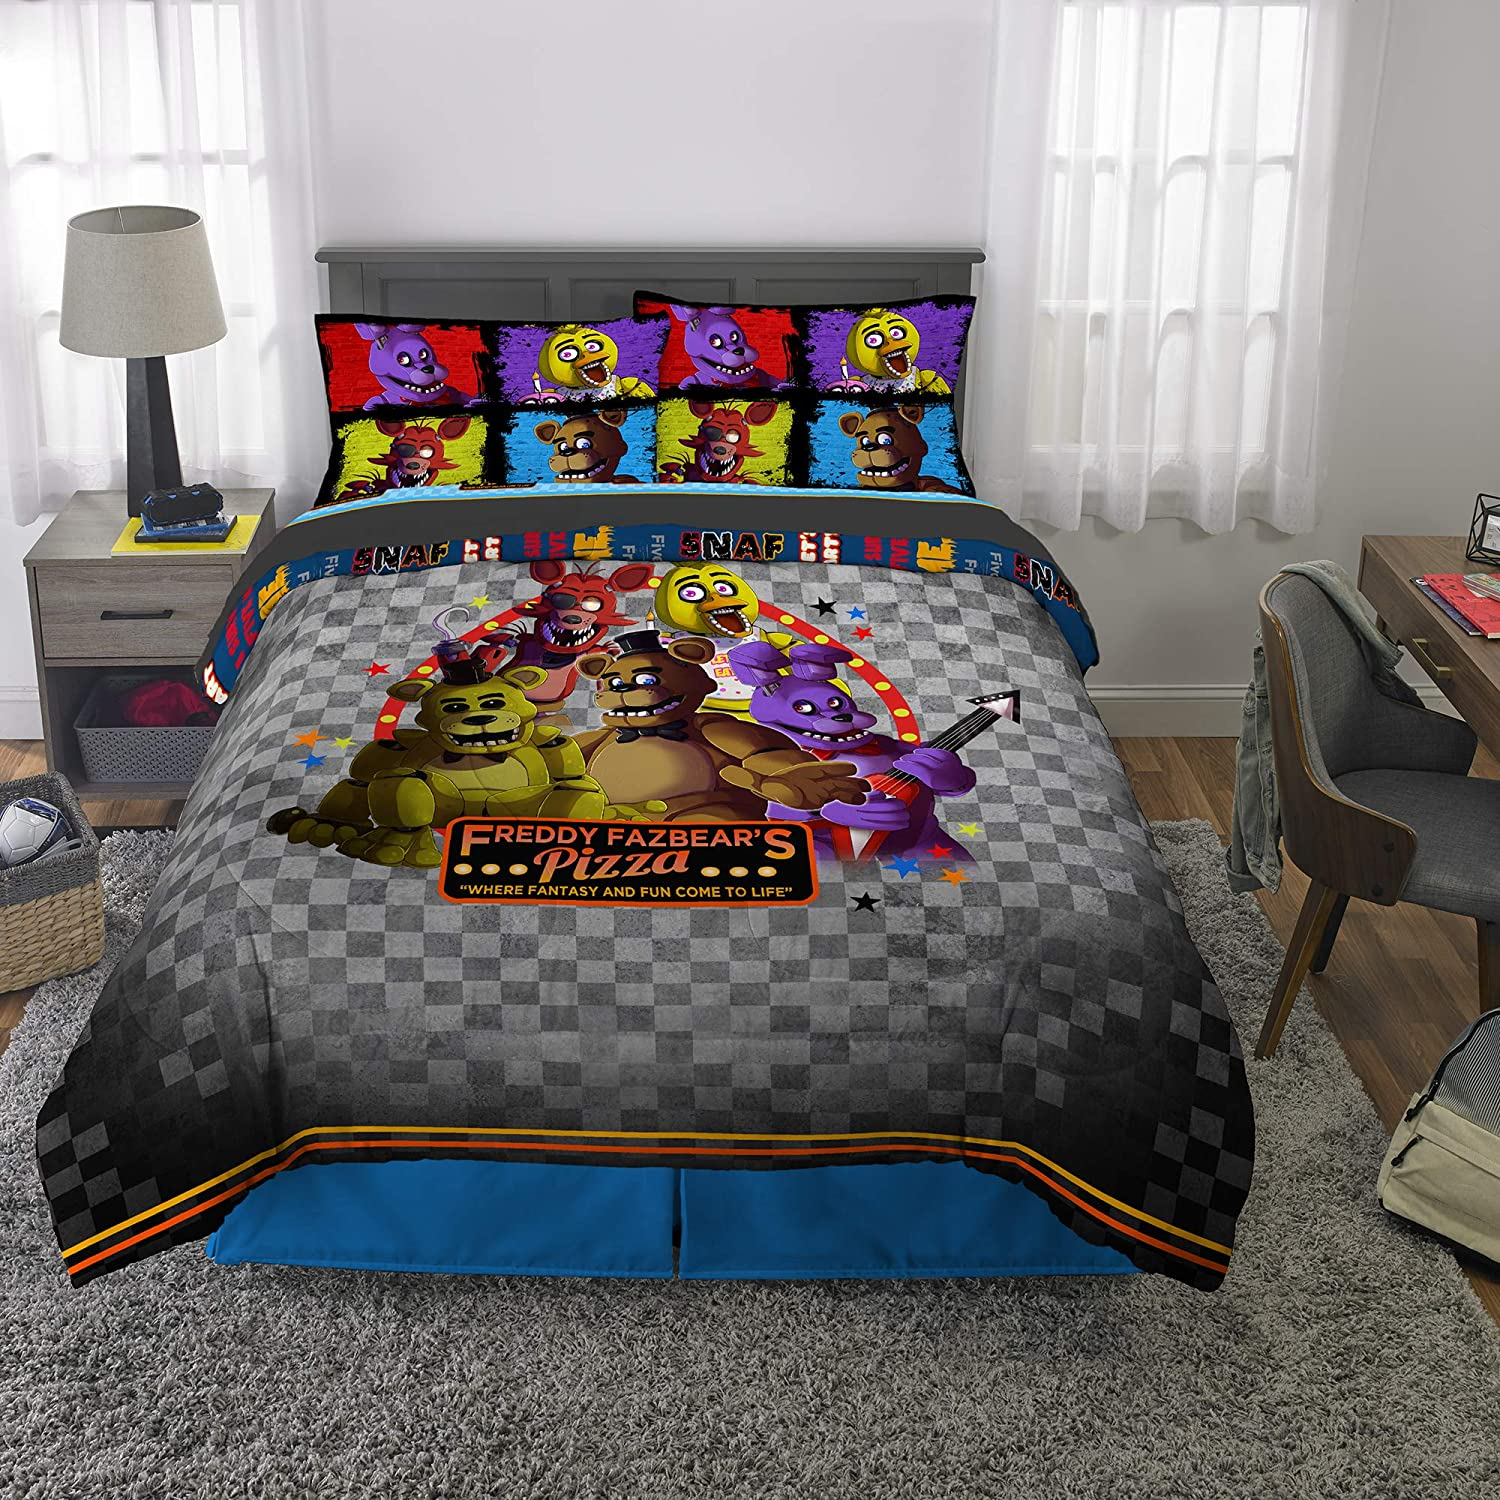 Franco Kids Bedding Super Soft Comforter and Sheet Set, 5 Piece Full Size, Five Nights at Freddy's